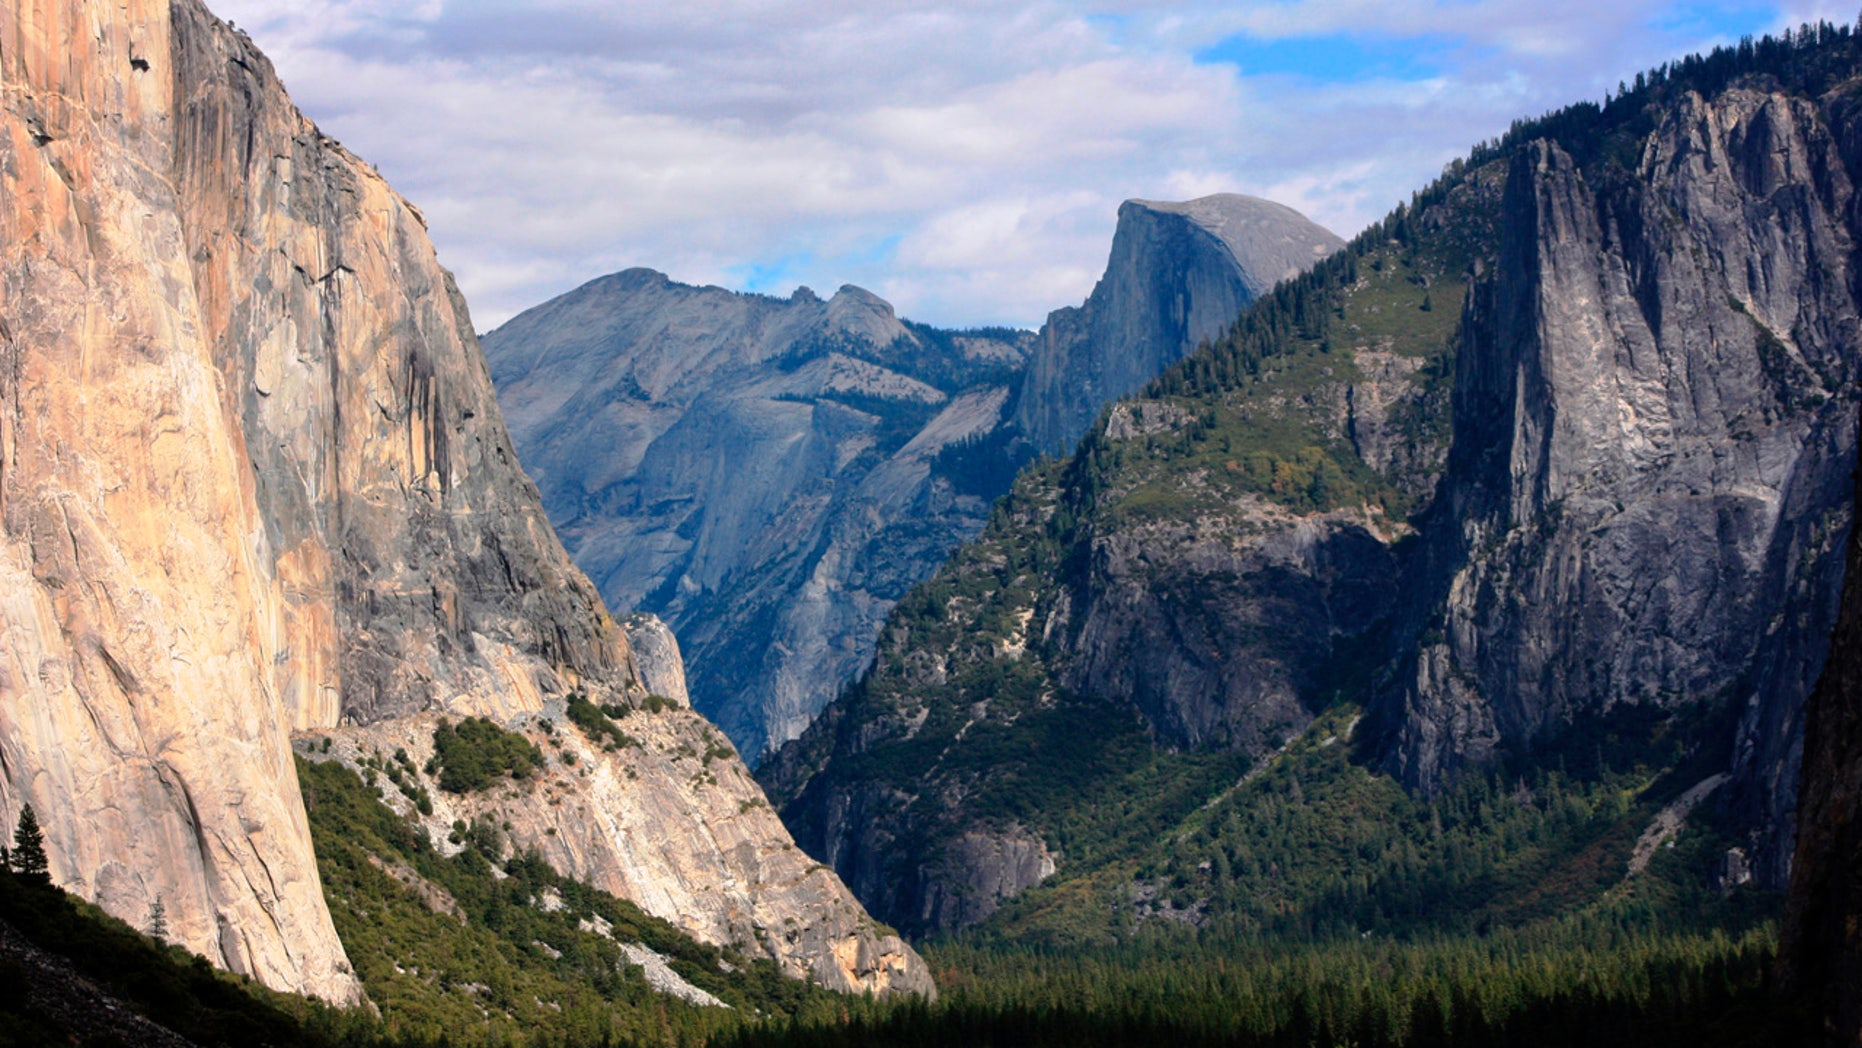 Oct. 2, 2013: This photo shows a view seen on the way to Glacier Point trail in Yosemite National Park, Calif.